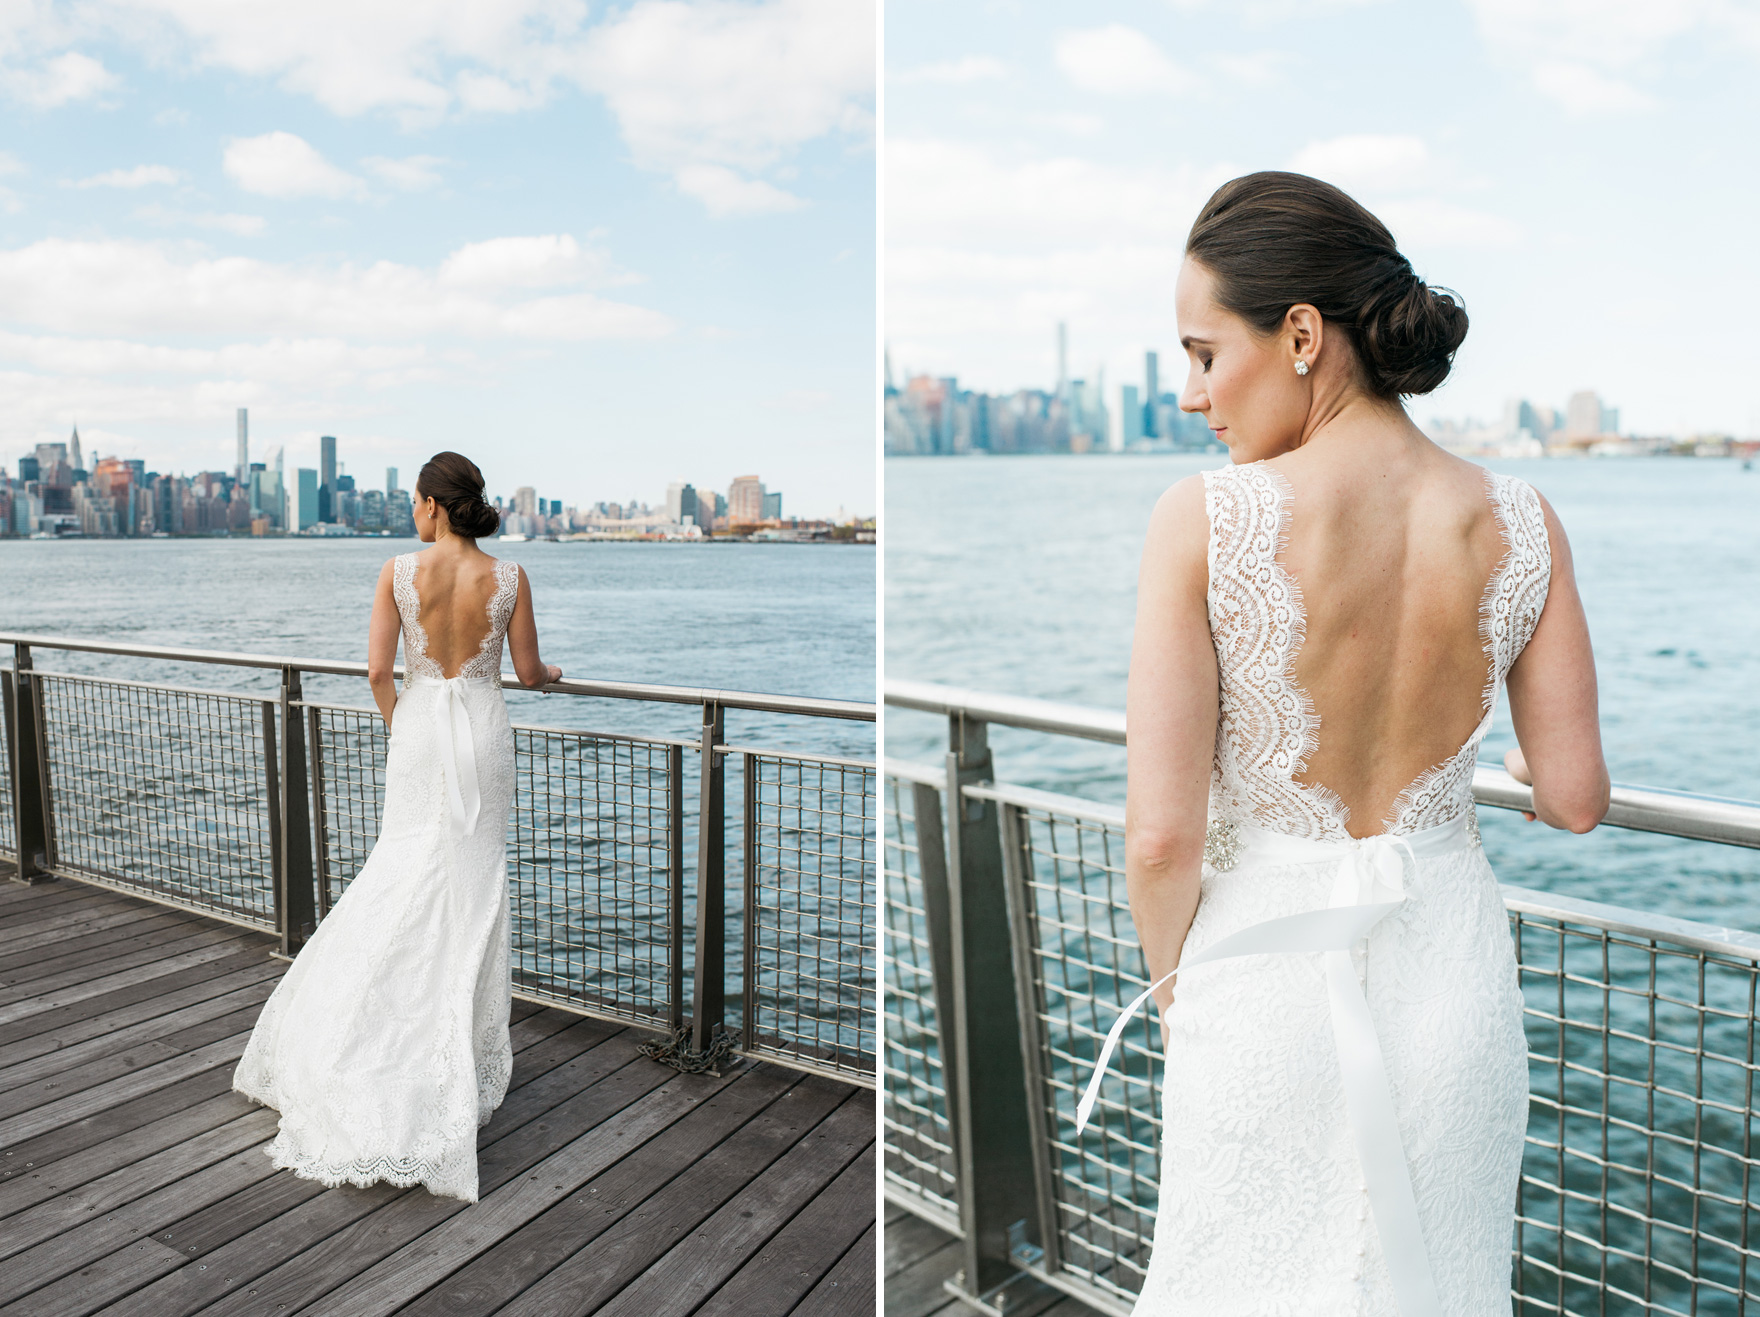 Williamsburg New York Fine Art Wedding by Christina Lilly Photography025